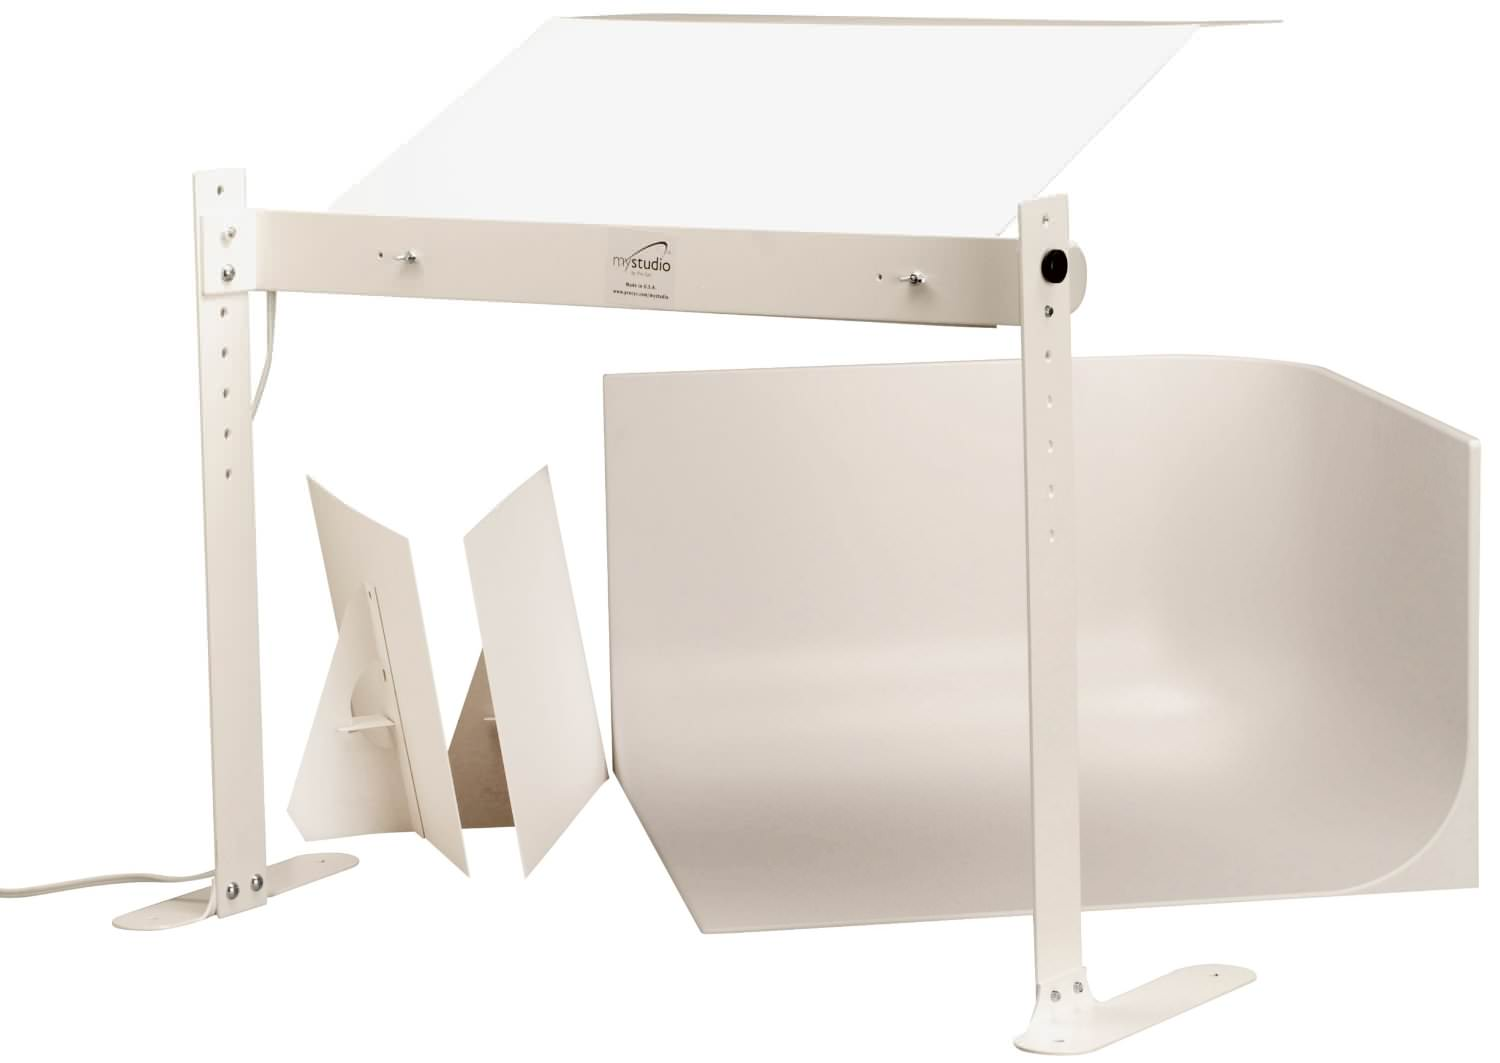 MyStudio MS20 Tabletop Studio Kit image